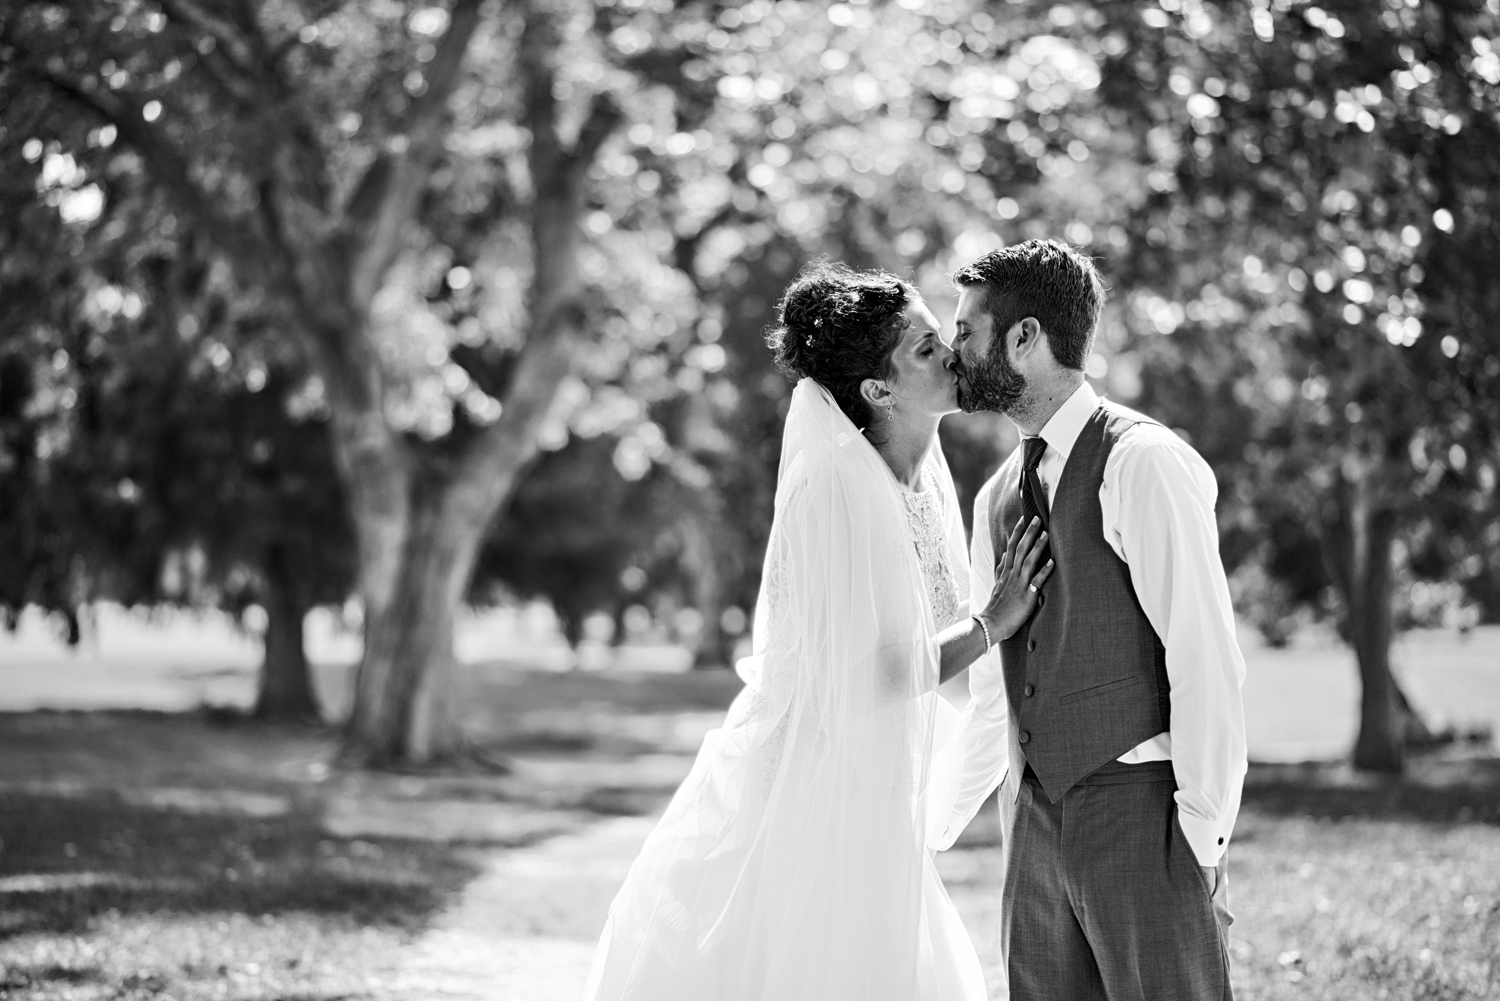 brooklyn_wedding_photographer_brooklyn_michigan_141.jpg